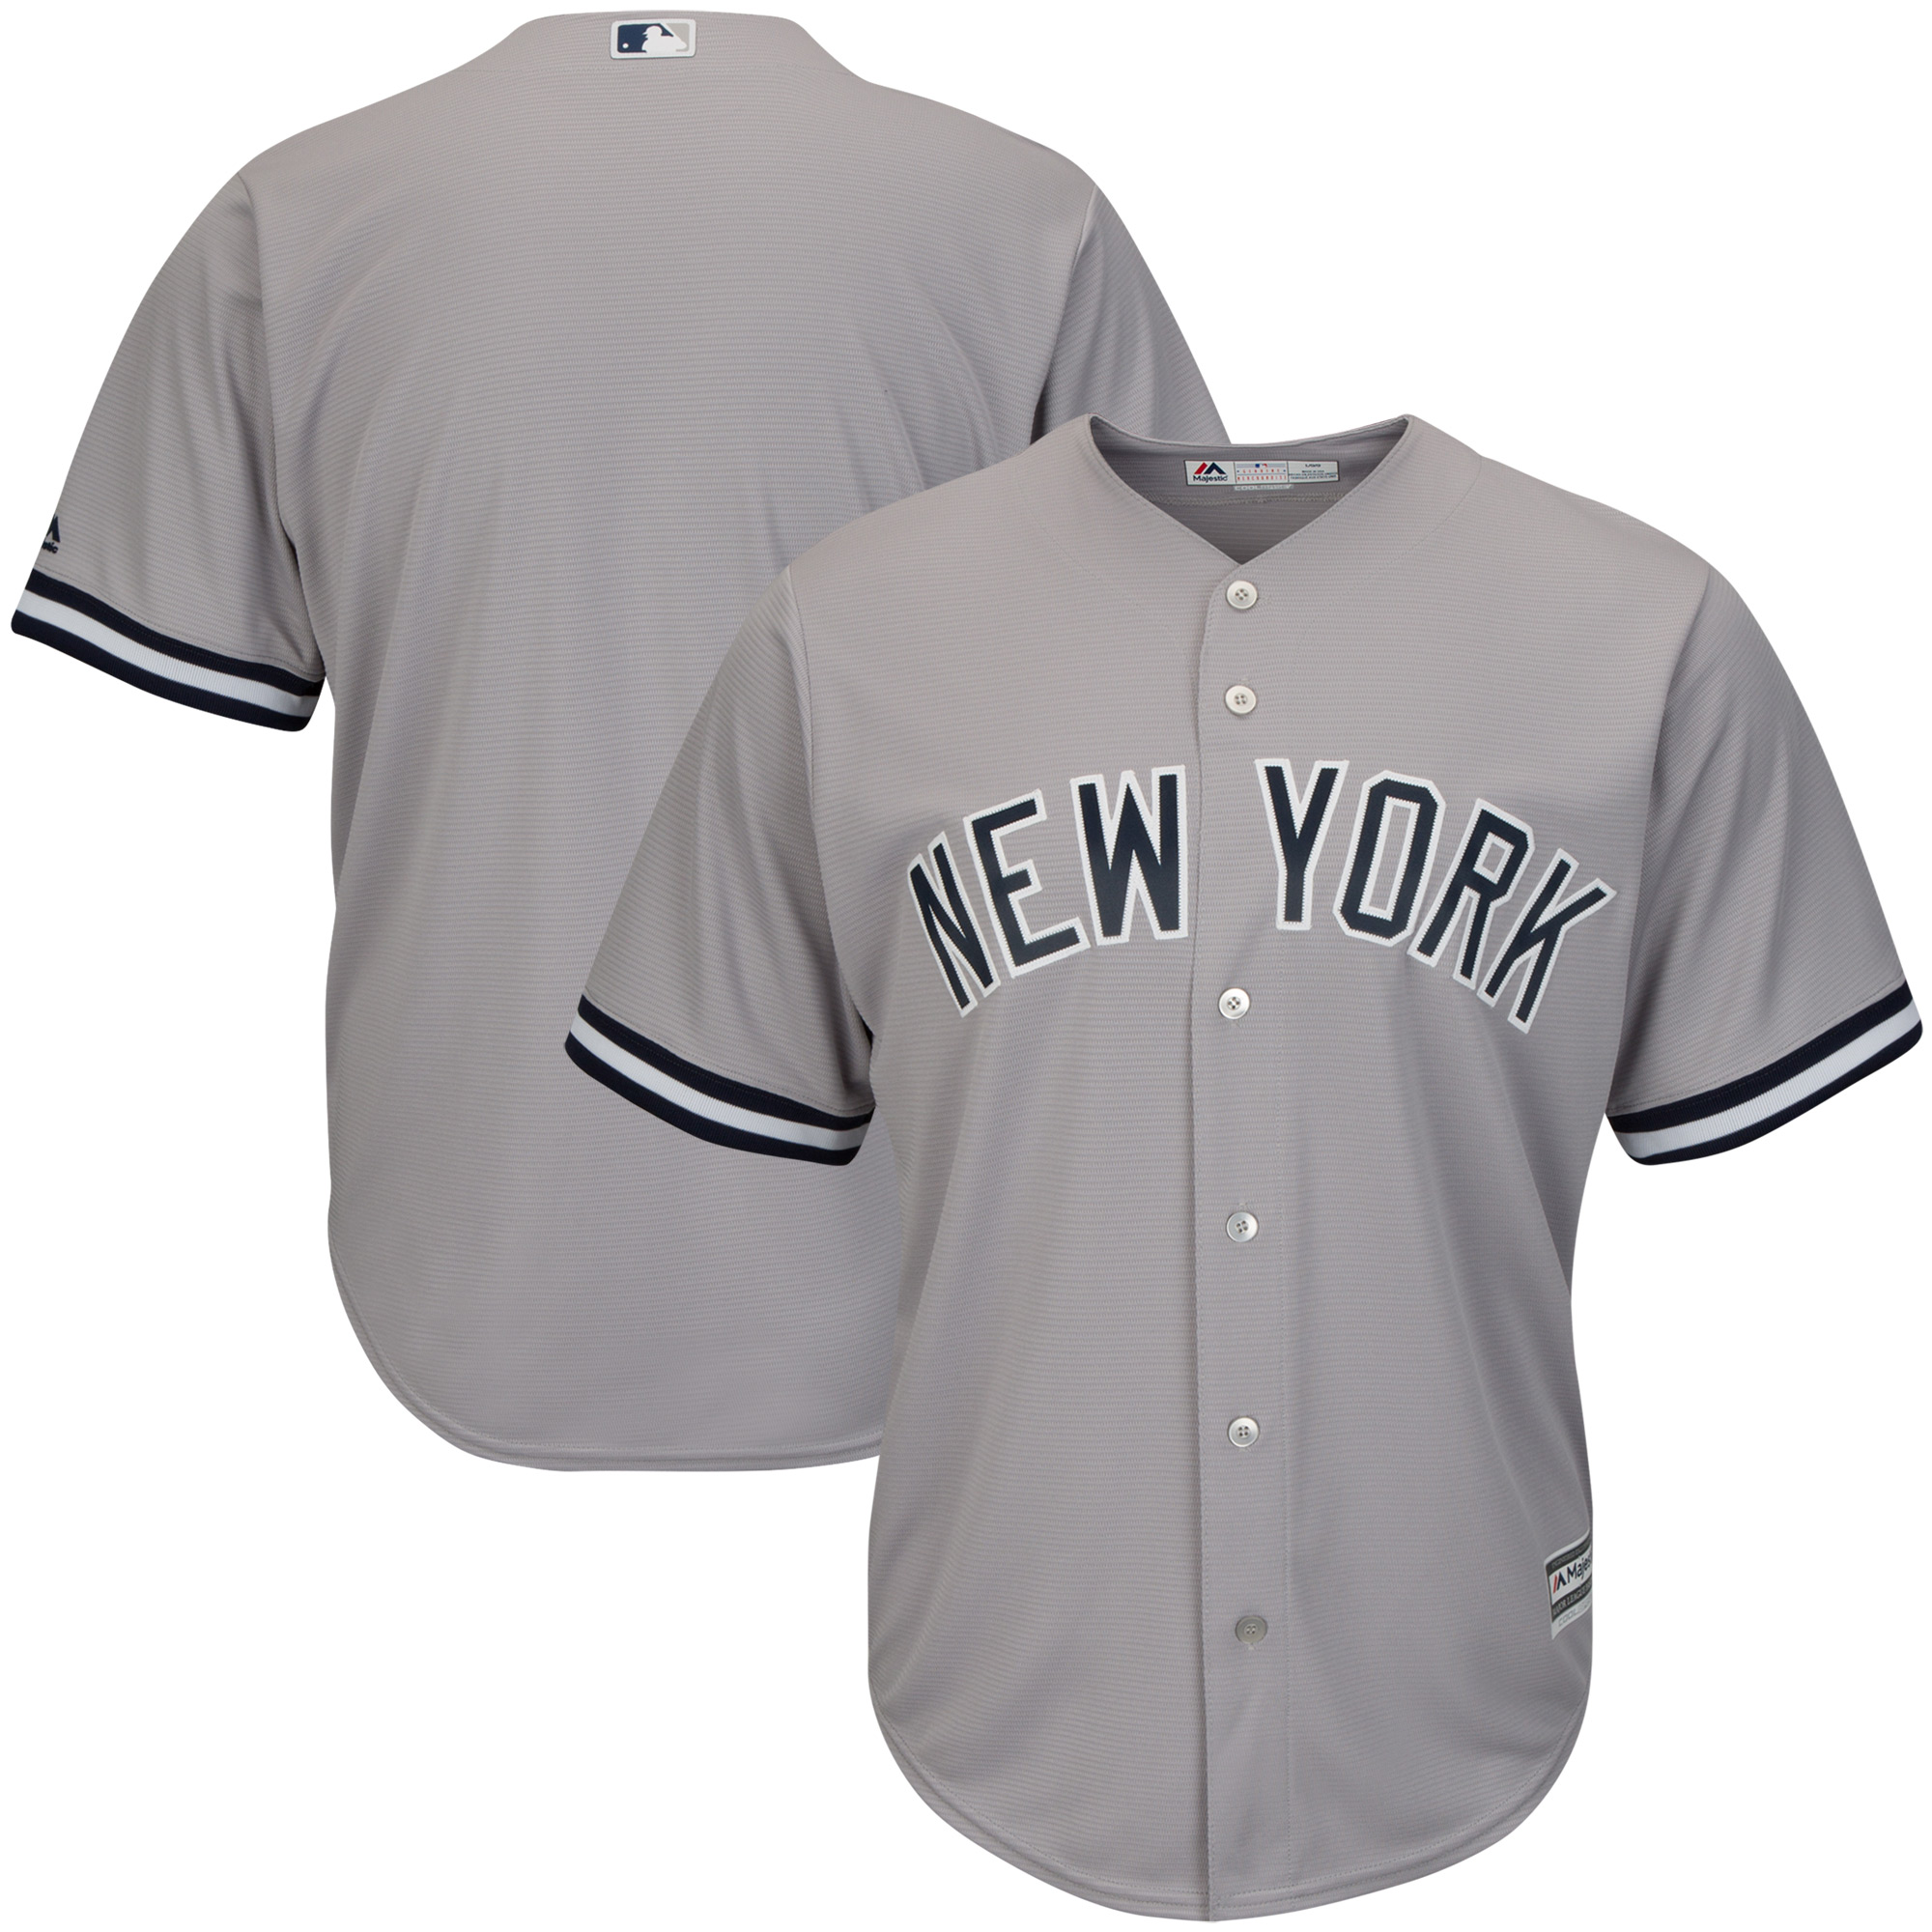 New York Yankees Majestic Youth Official Cool Base Jersey - Gray